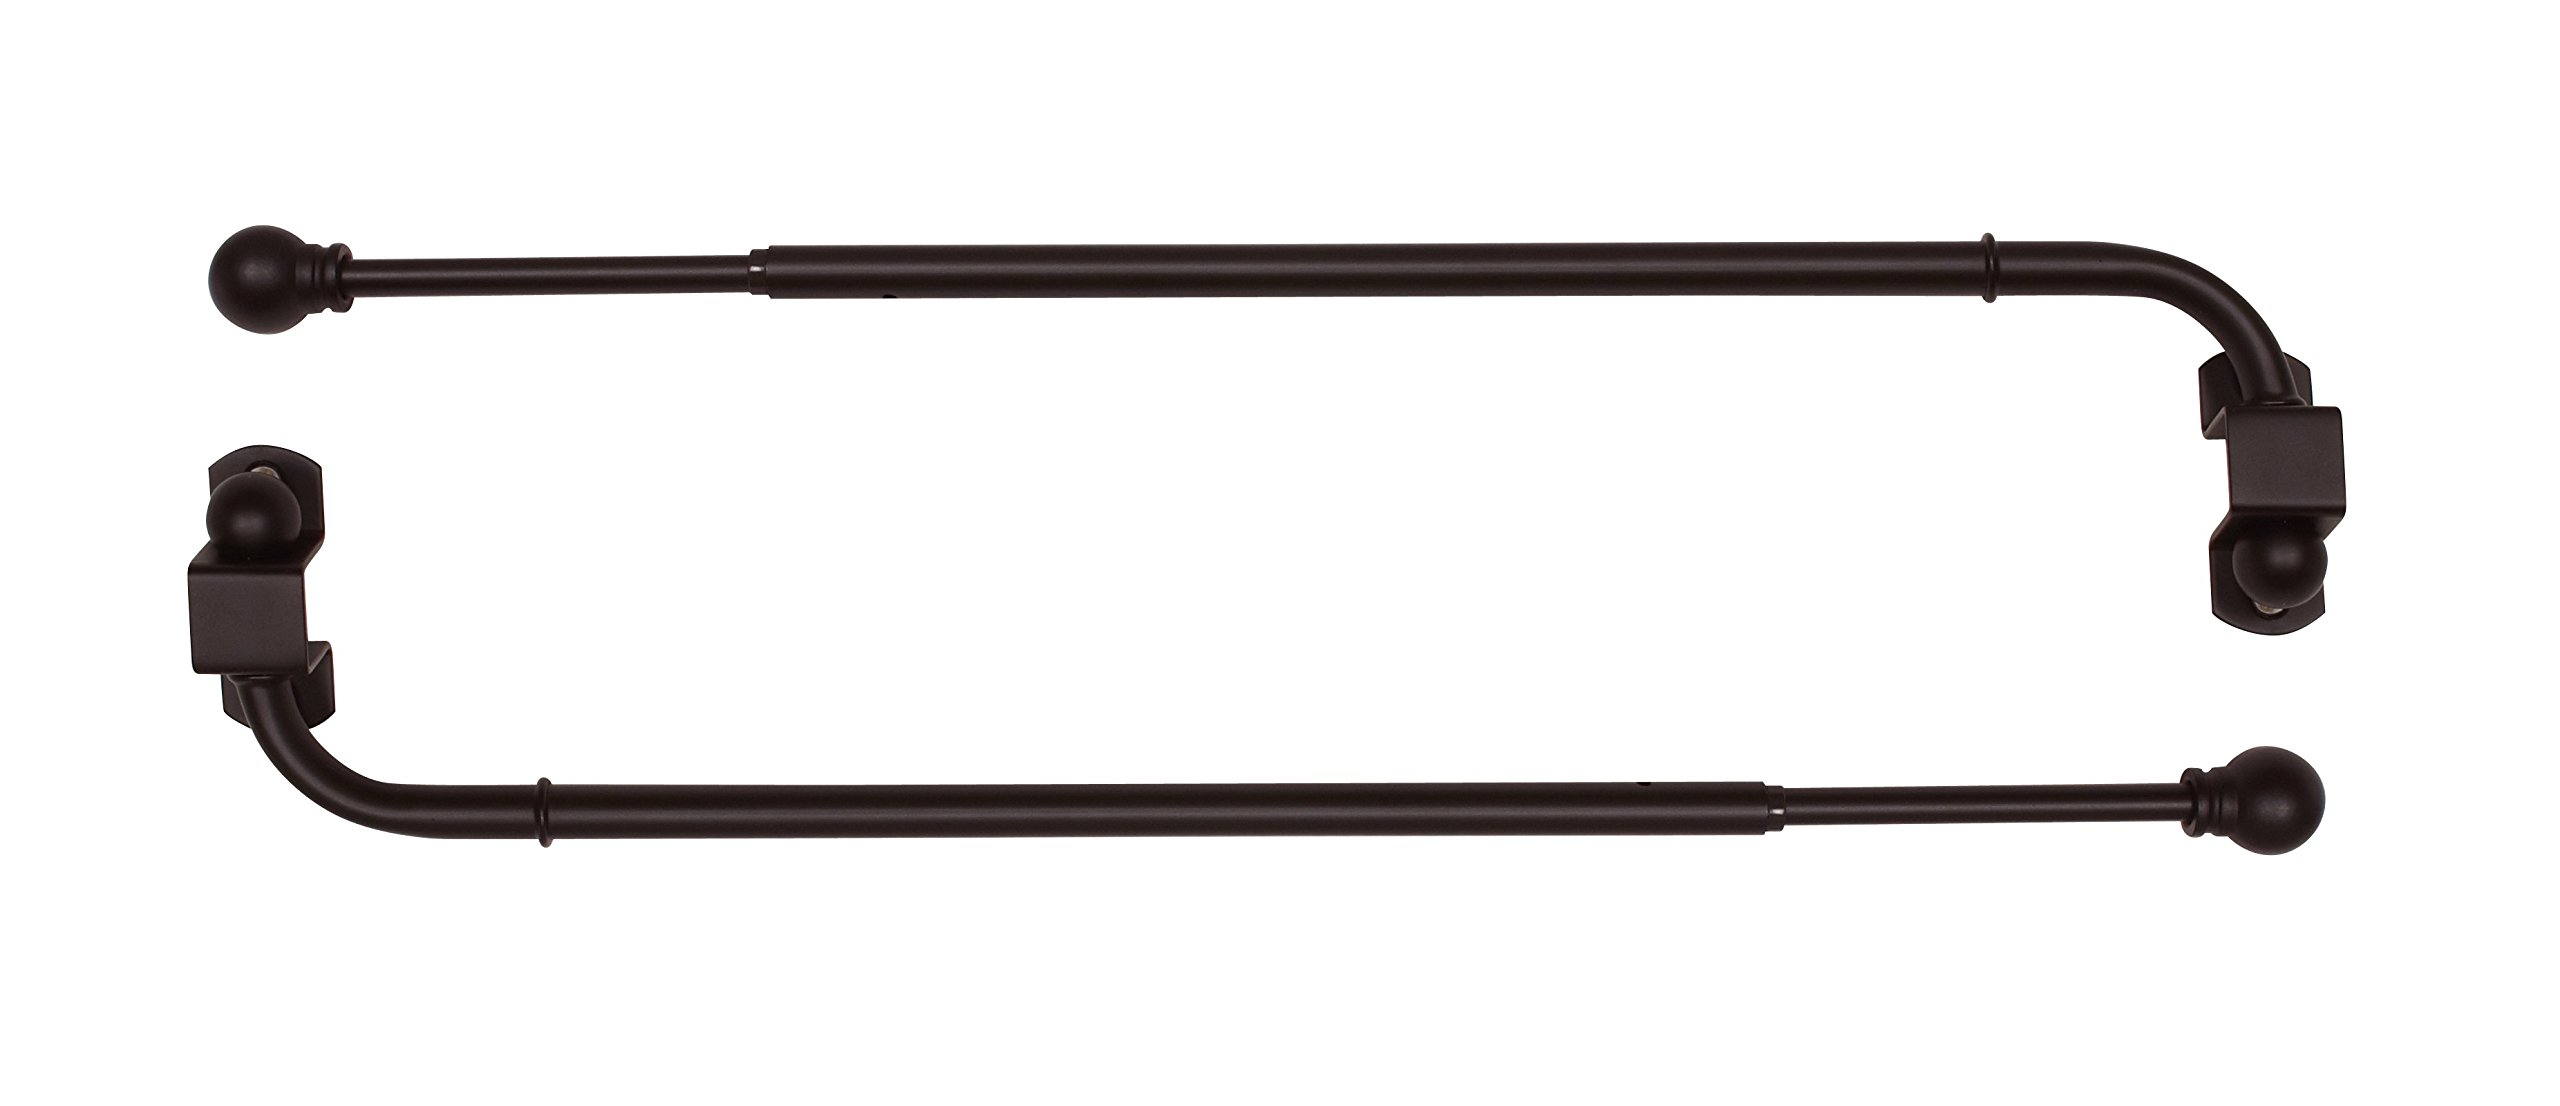 Versailles Home Fashions Pair of Swing Arm with Ball Finial, Espresso, 24 by 38-Inch